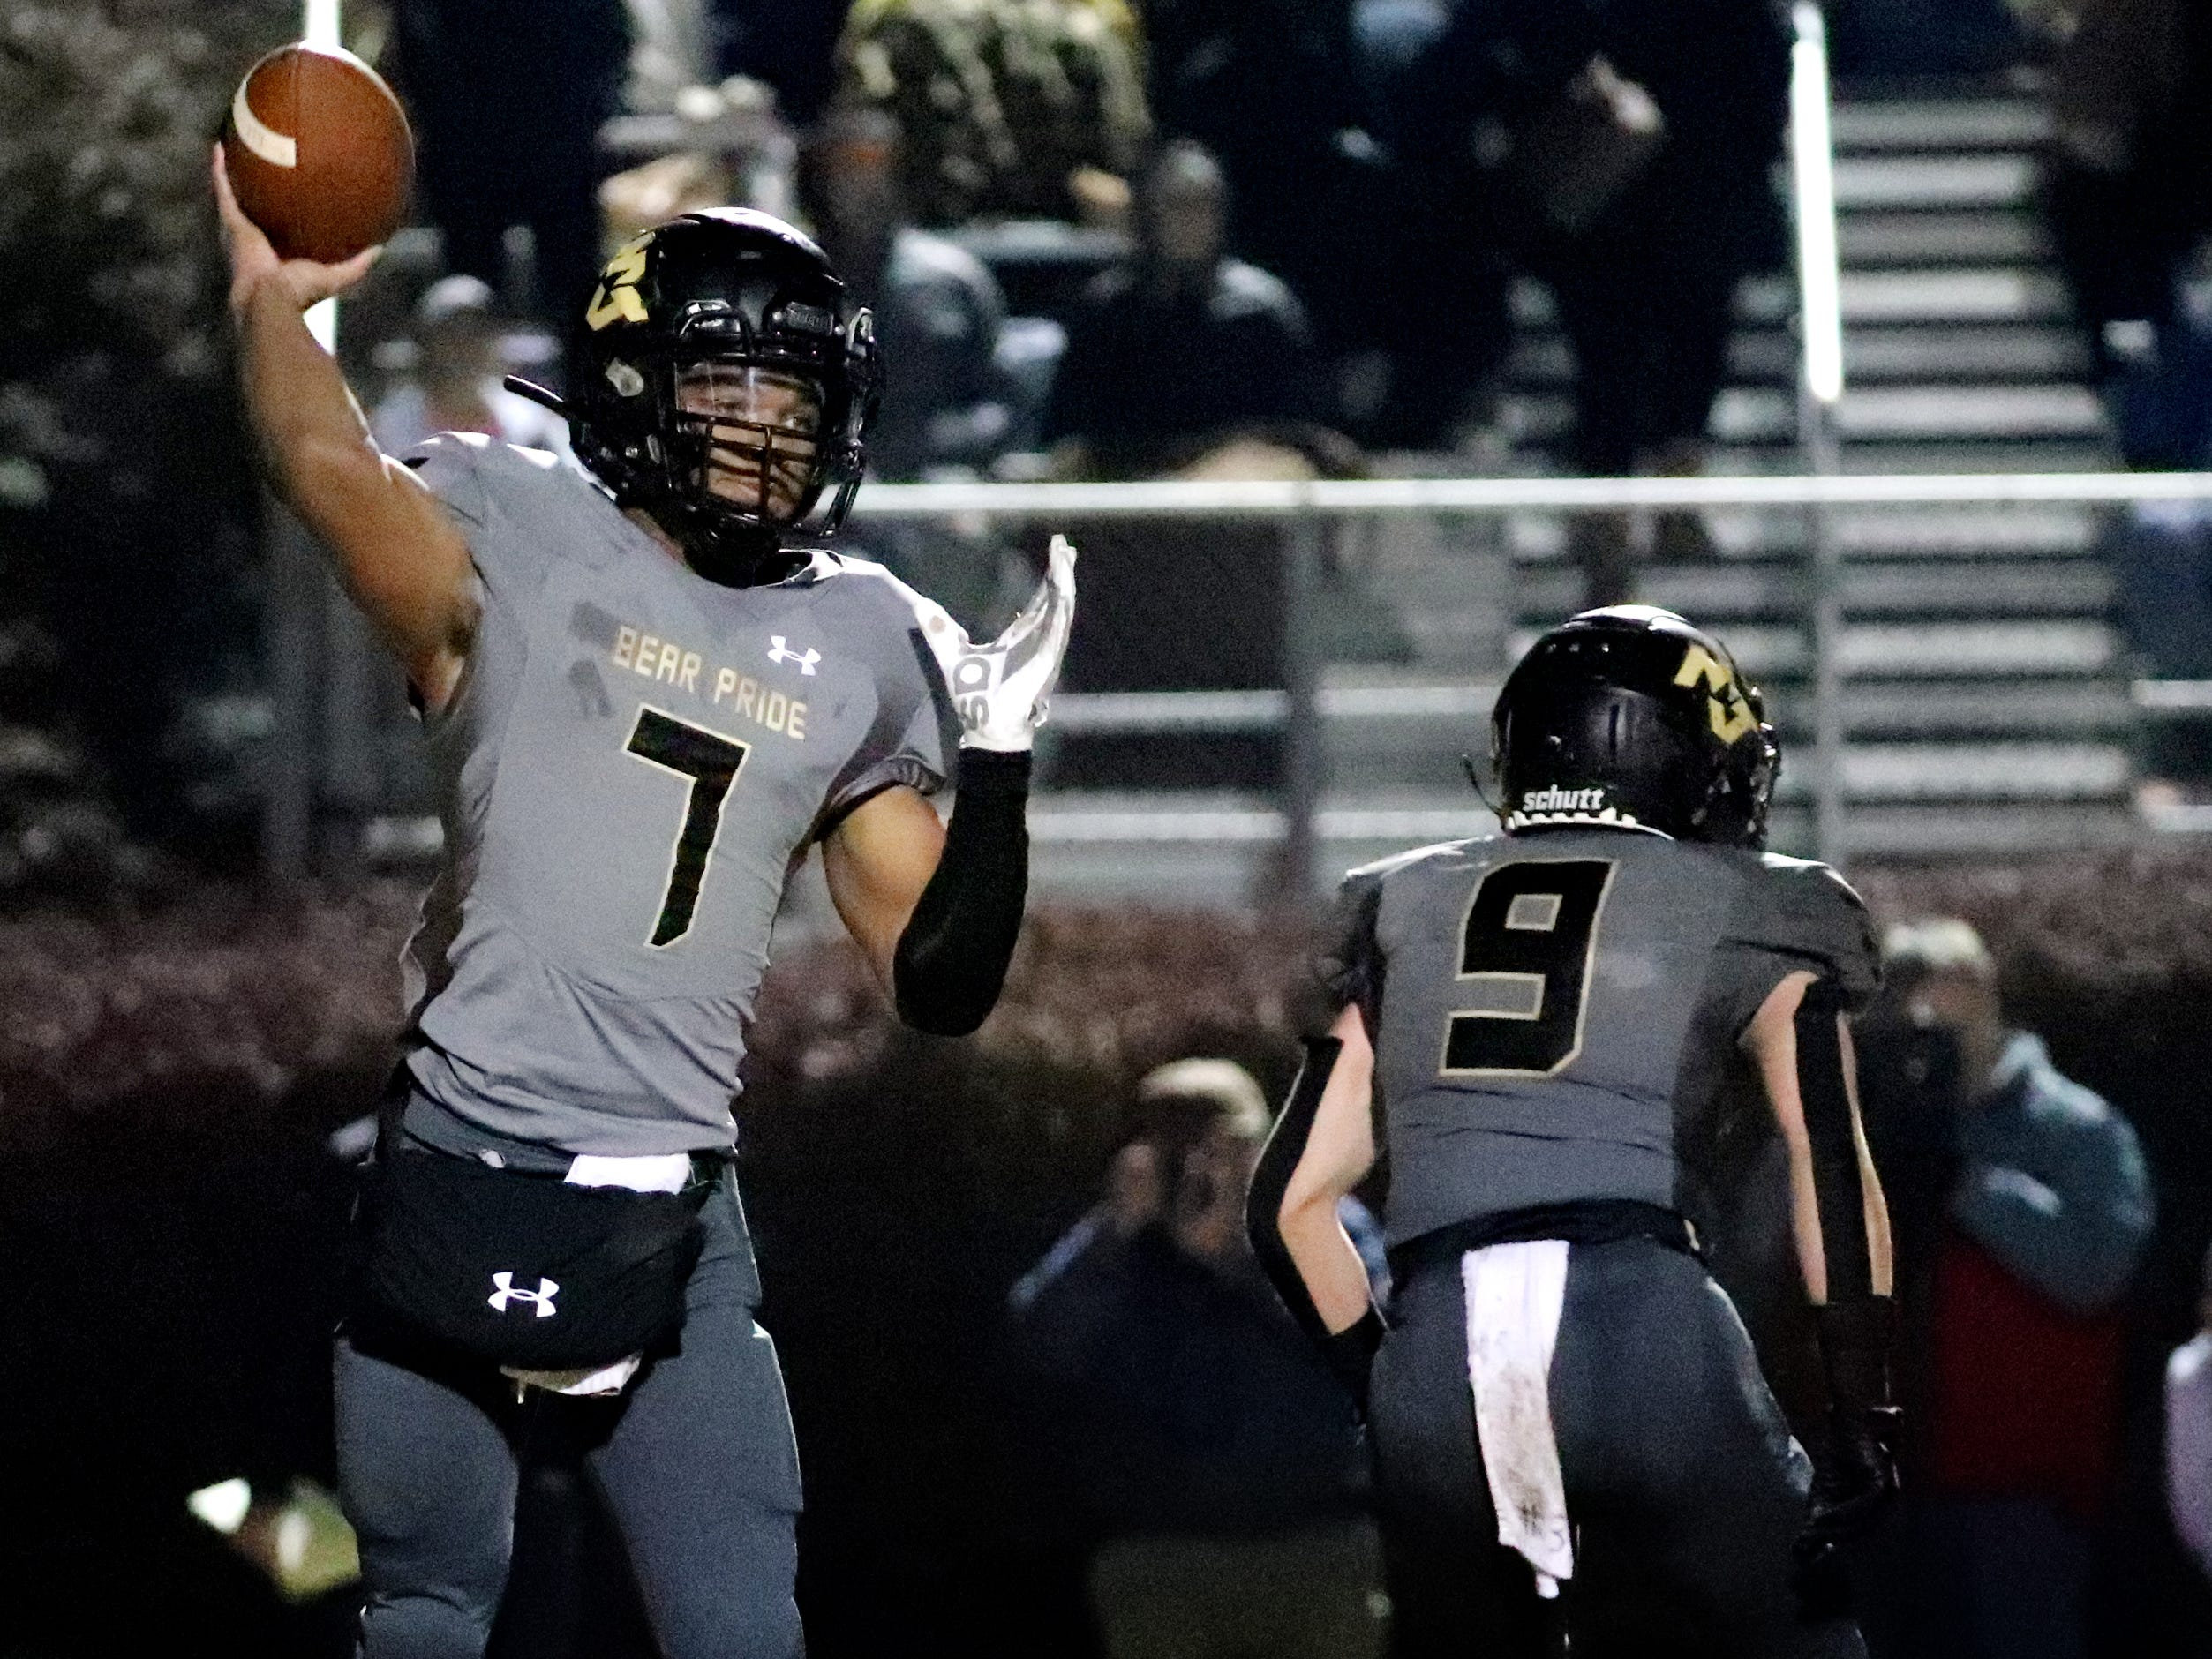 Mt. Juliet's quarterback Alvin Mixon (7) passes the ball against Oakland at Mt Juliet, on Friday, Nov. 16, 2018, during the Class 6A playoffs.